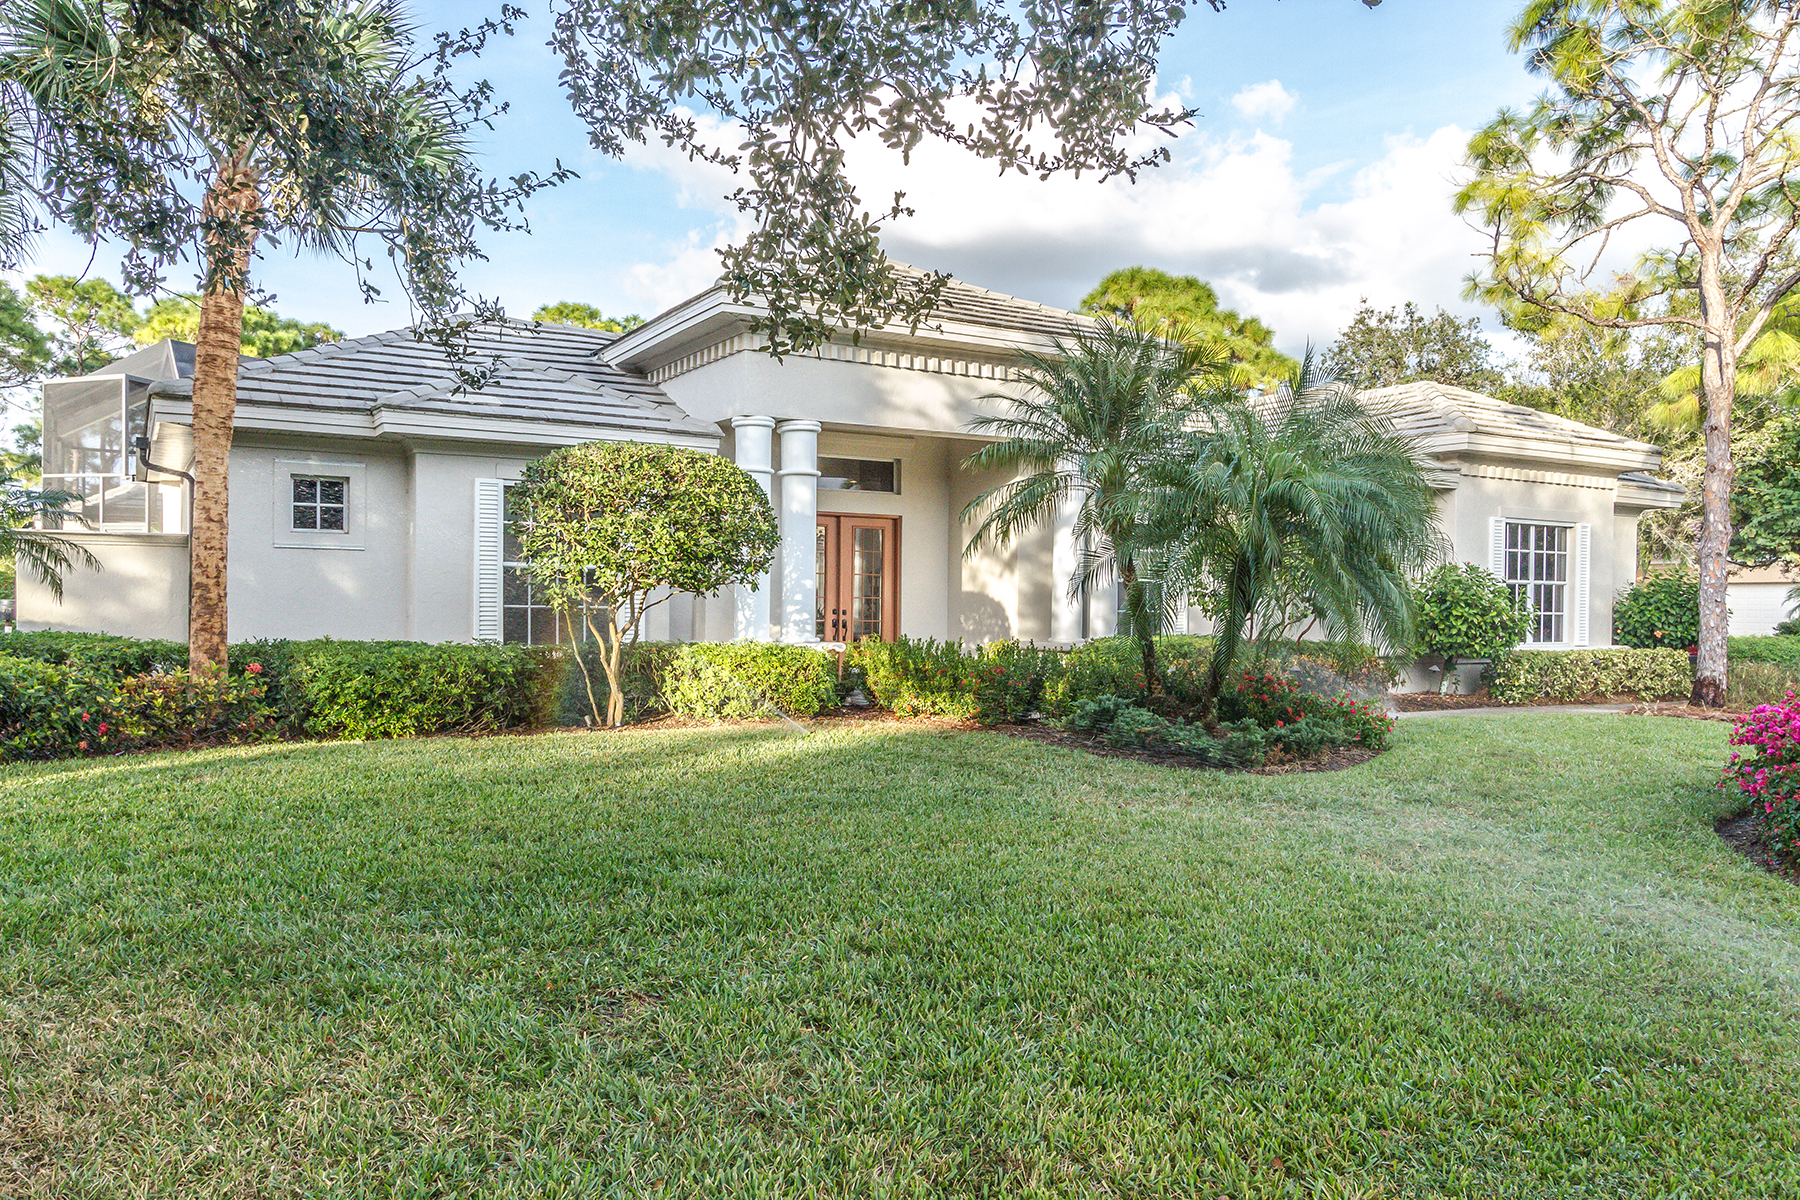 Single Family Home for Rent at PELICAN LANDING - RIDGE 25040 Ridge Oak Dr, Bonita Springs, Florida 34134 United States